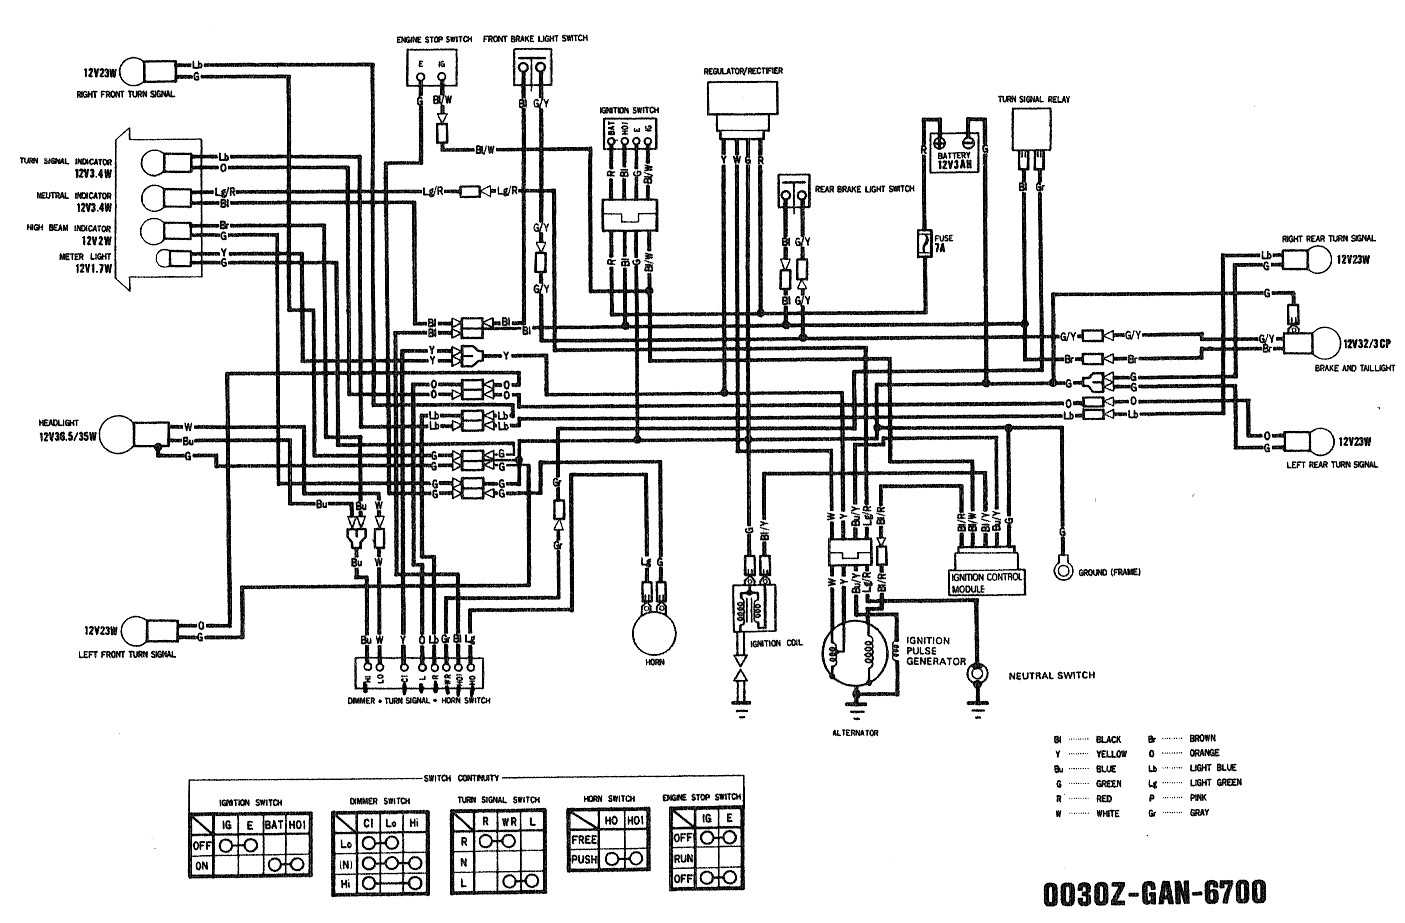 1978 honda ct70 wiring diagram